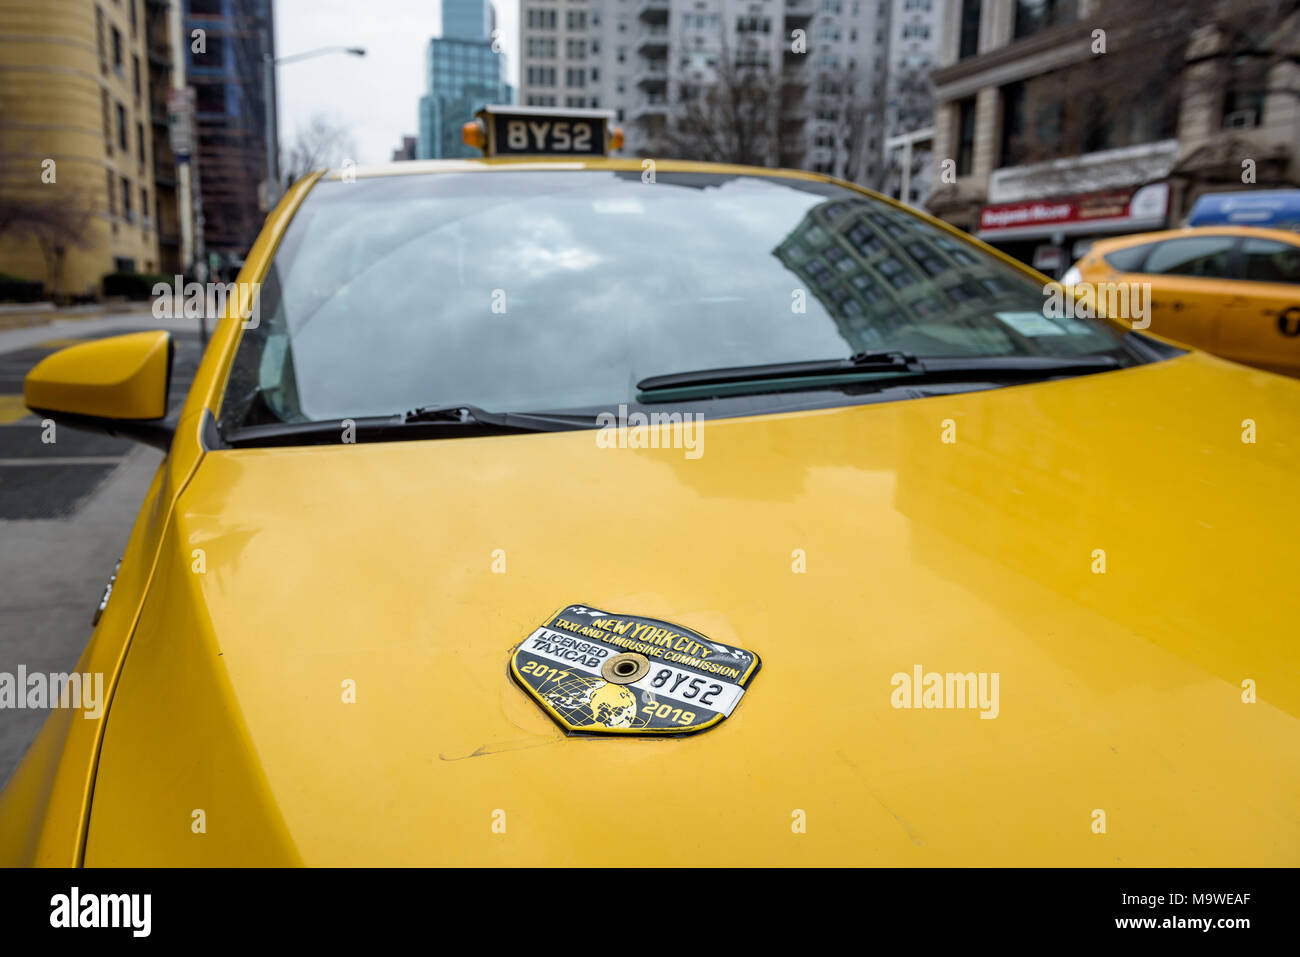 New York, United States  28th Mar, 2018  NYC Yellow Taxi